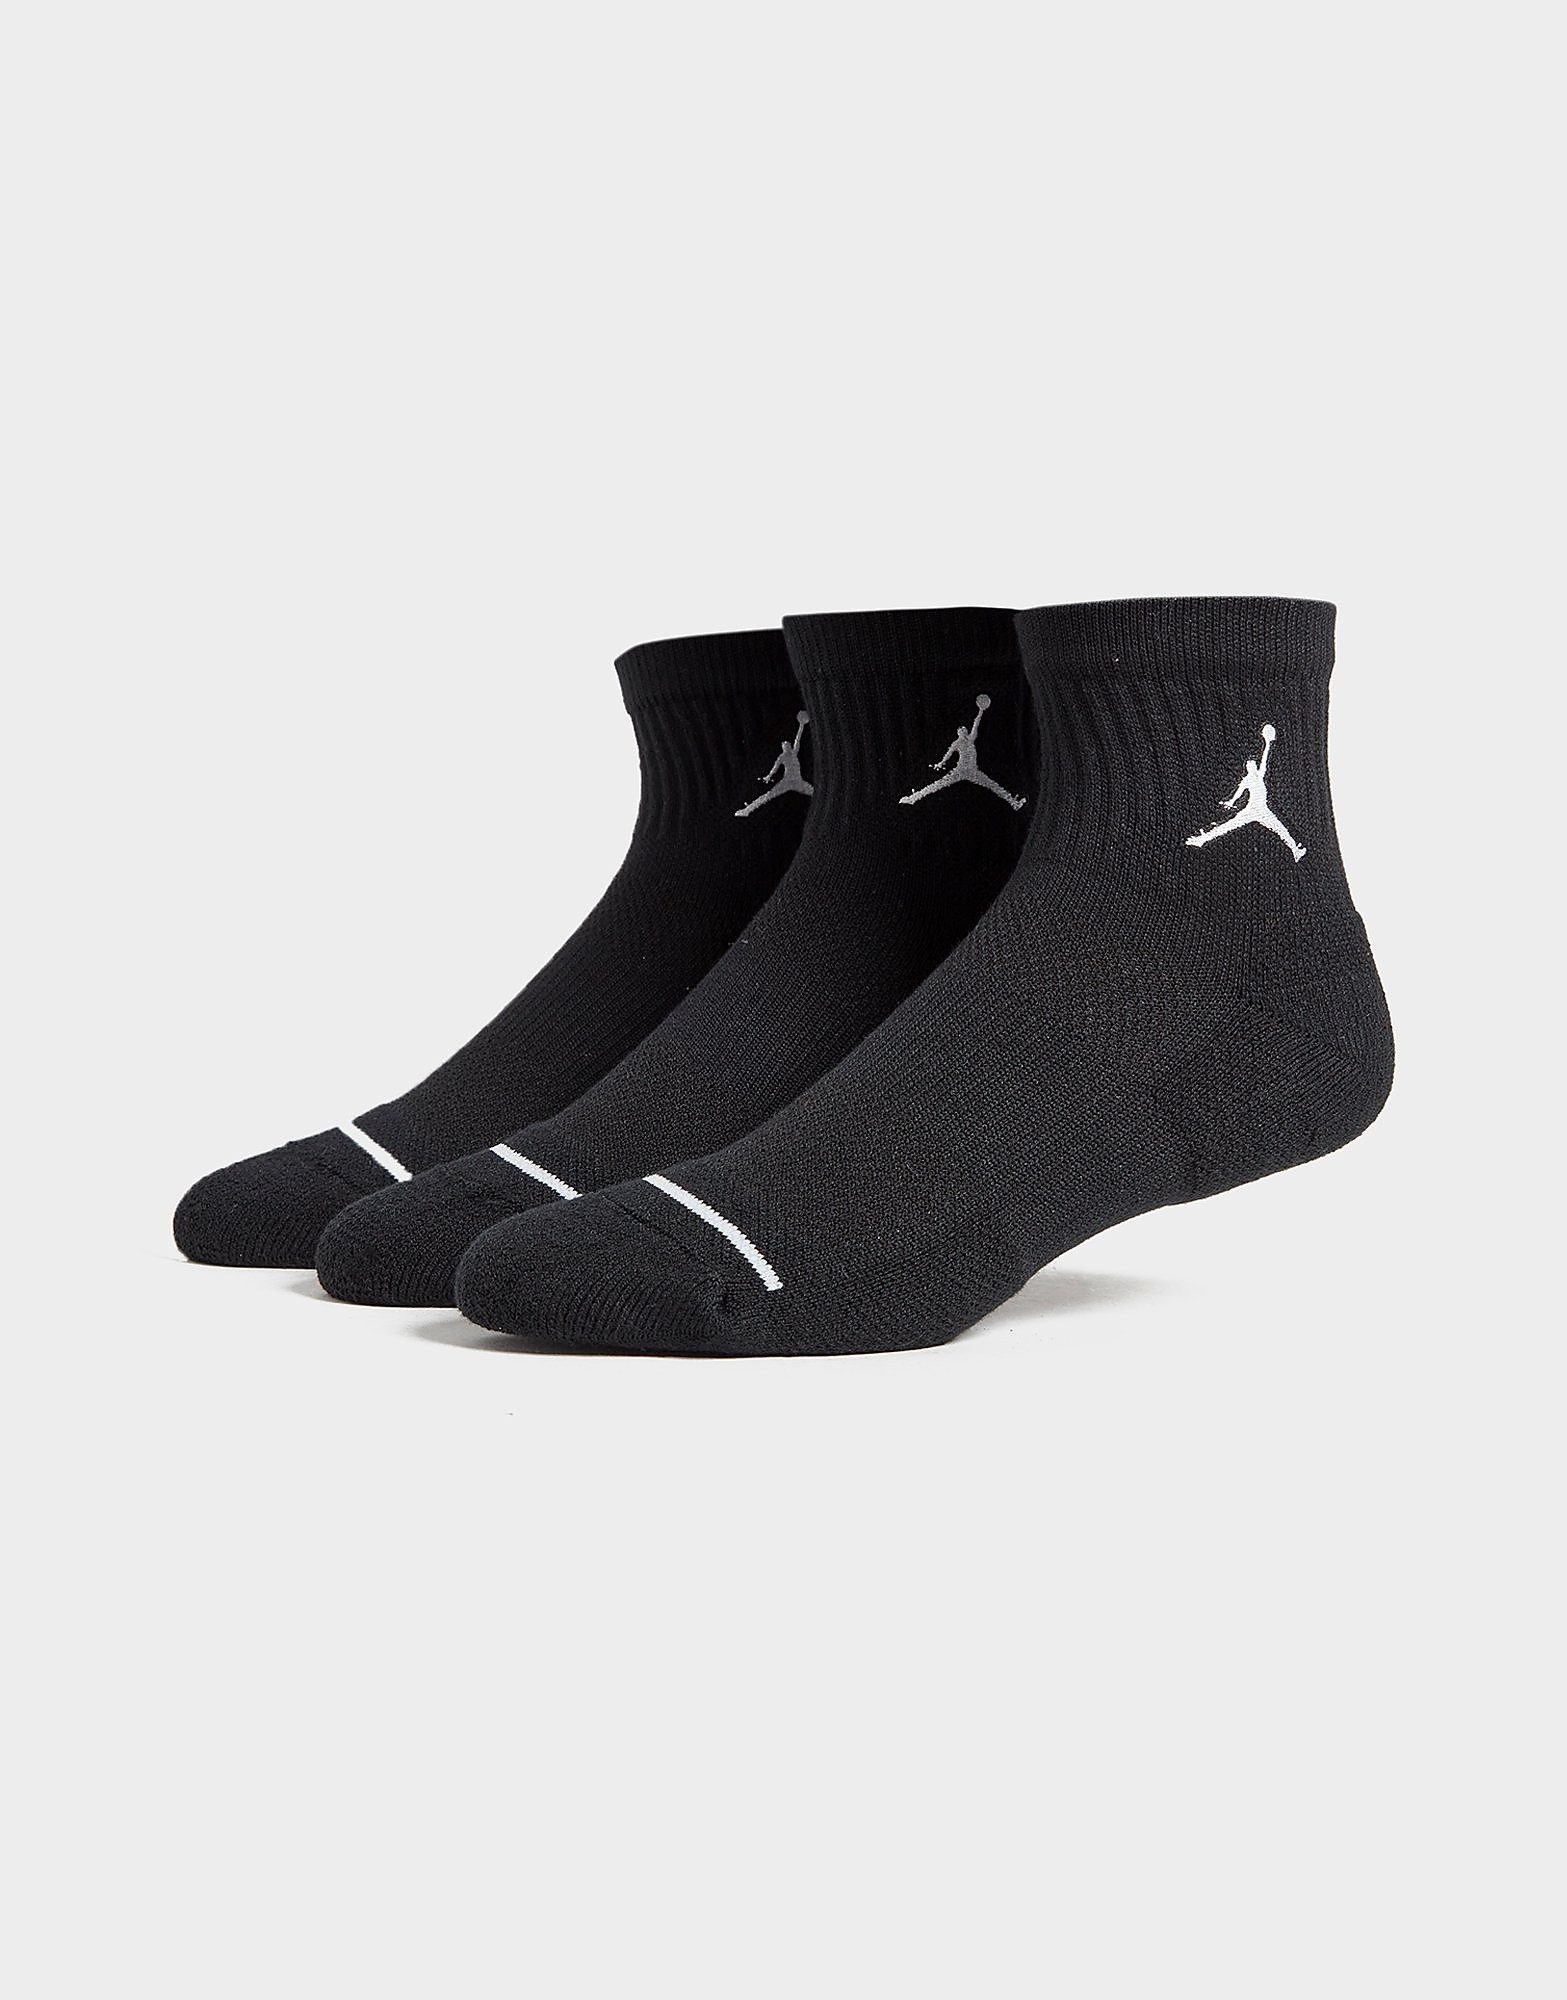 Jordan Drift Low Sportsocken im 3er-Pack